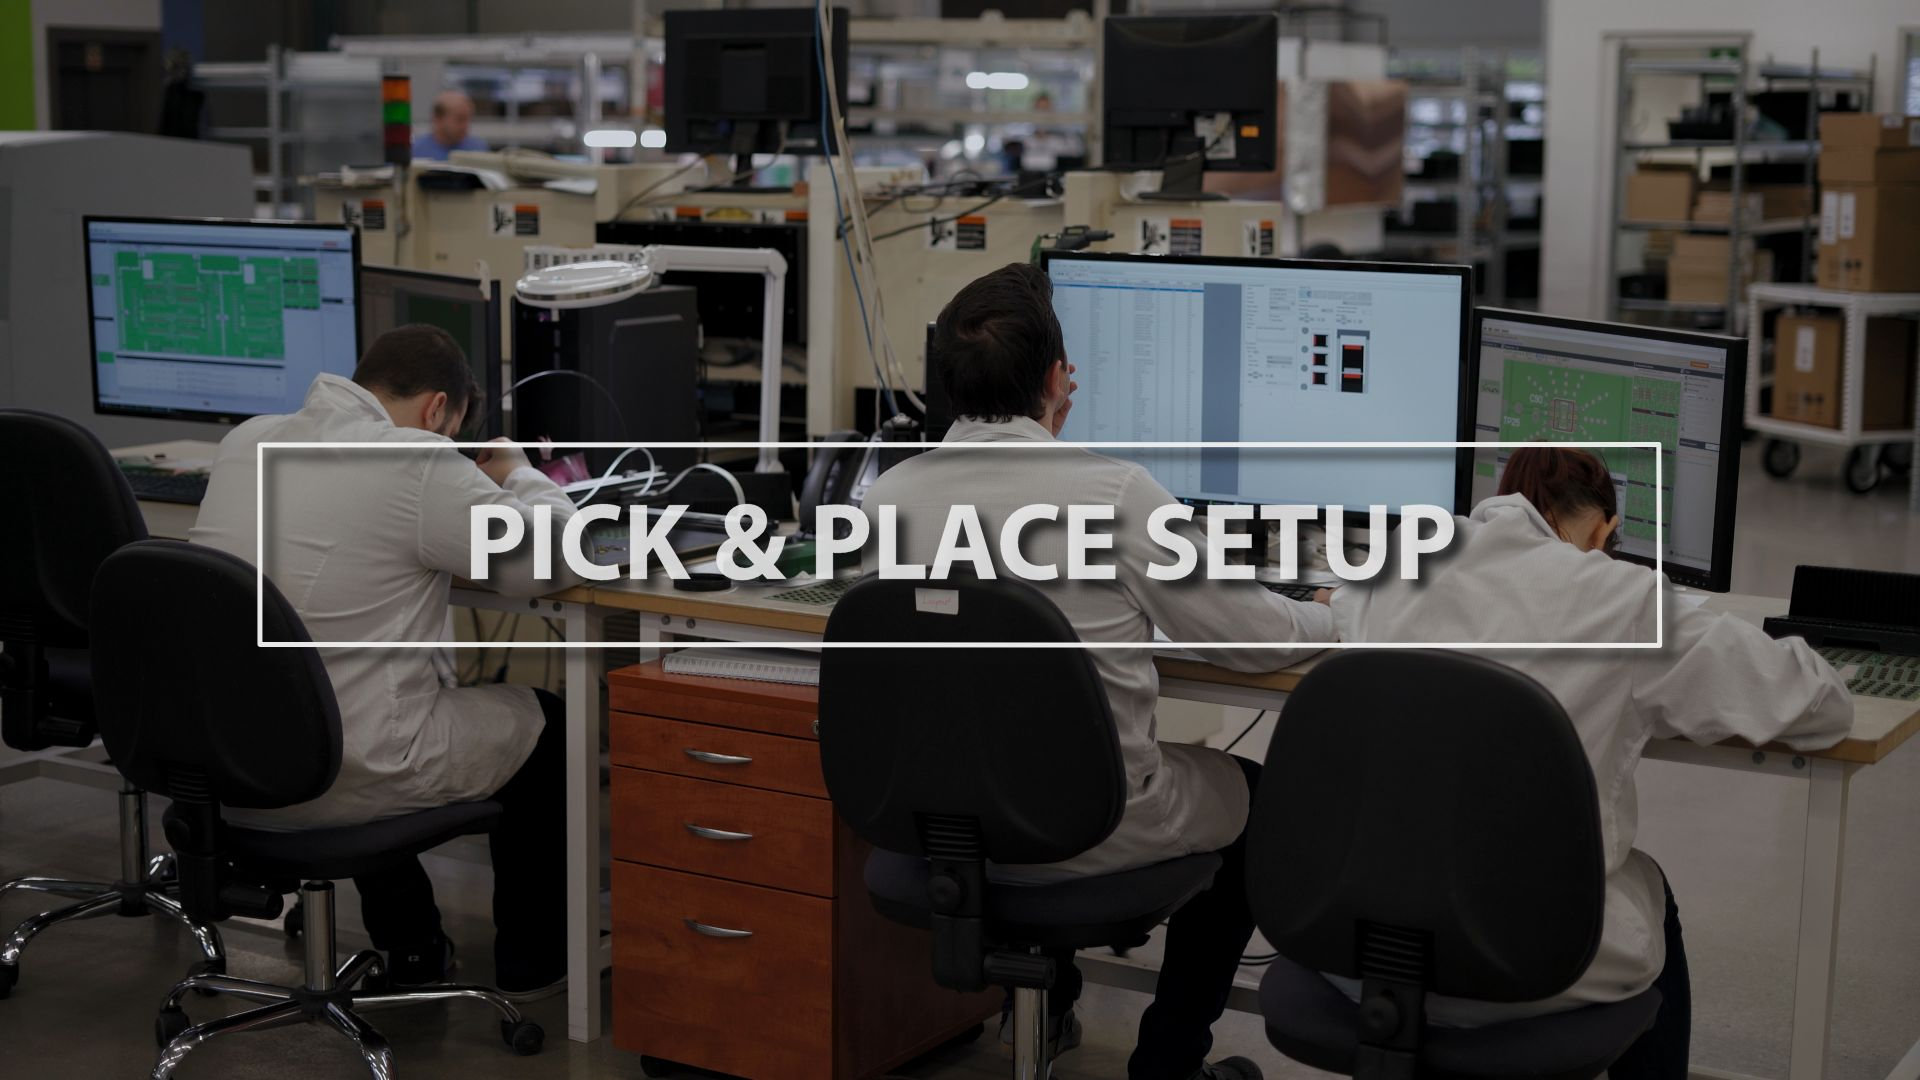 Technology Thursday: Pick & Place Setup